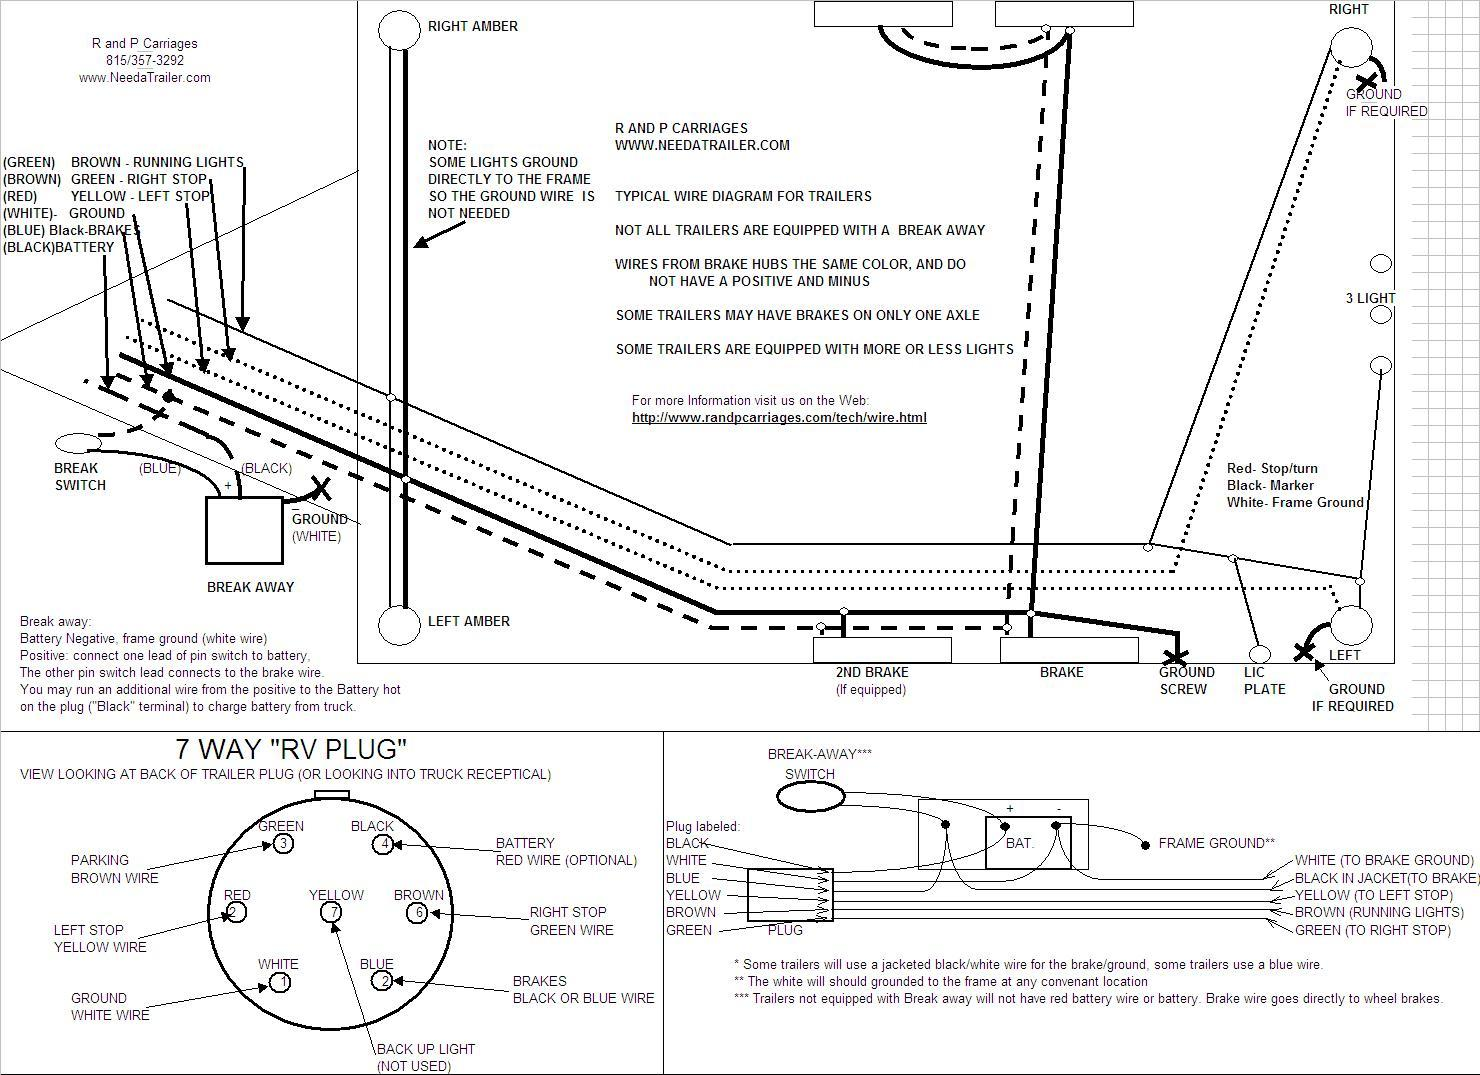 7 way wiring diagram brake controller installation instructions electric trailer jack wiring diagram at crackthecode.co